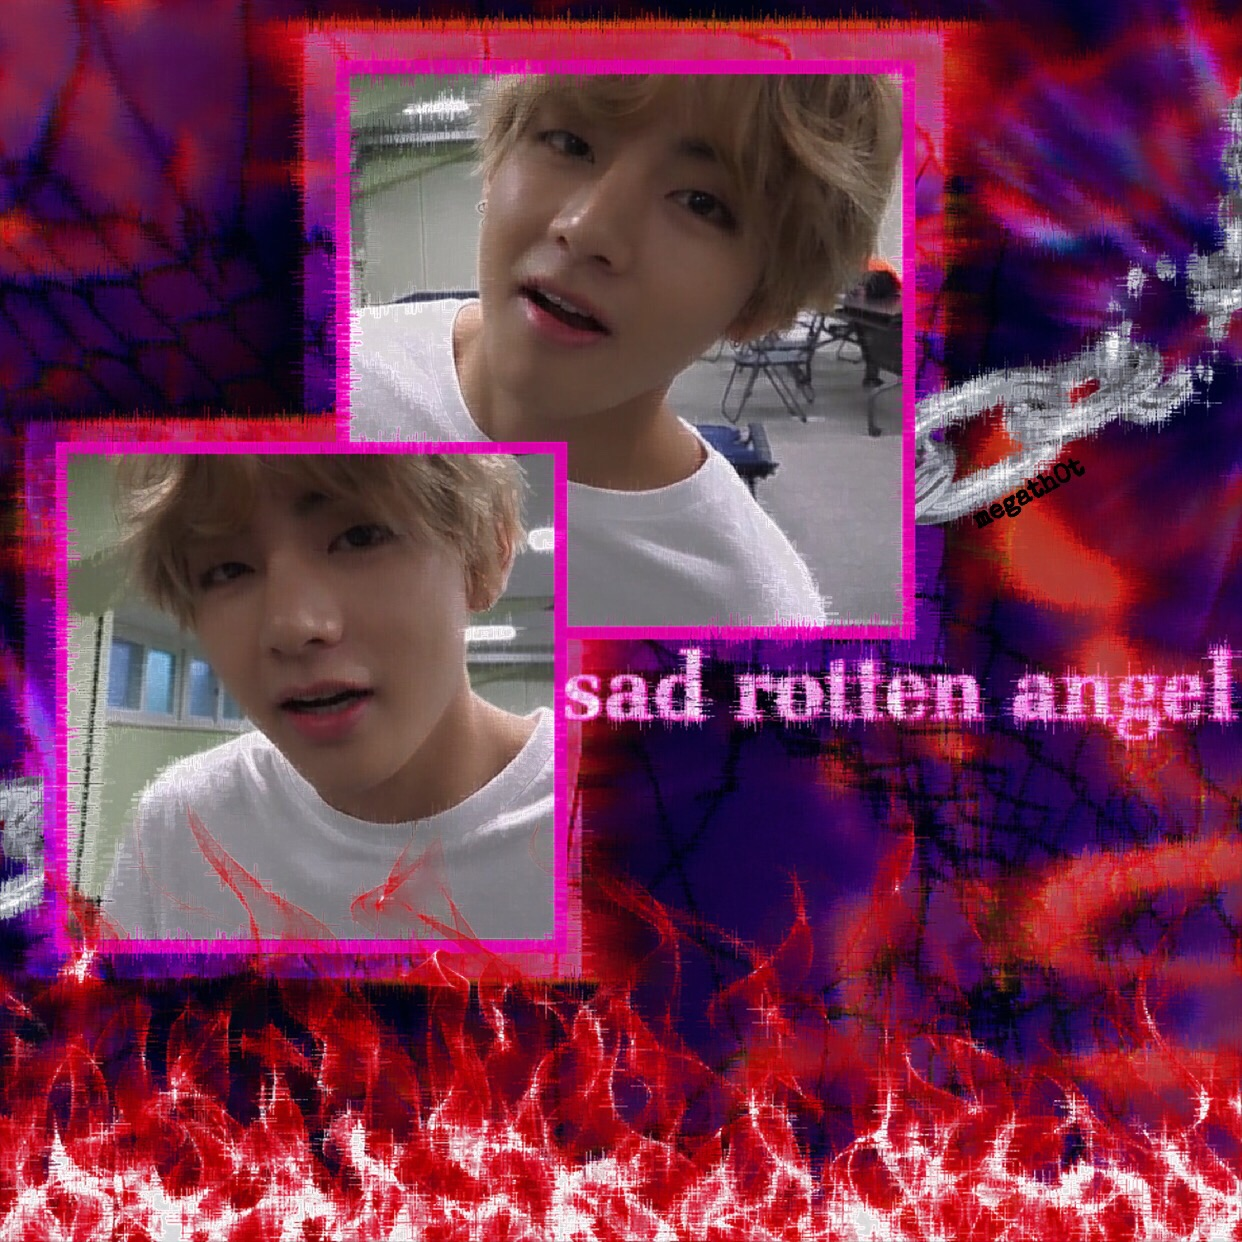 taehyung, cyber goth, bts and cyber bts